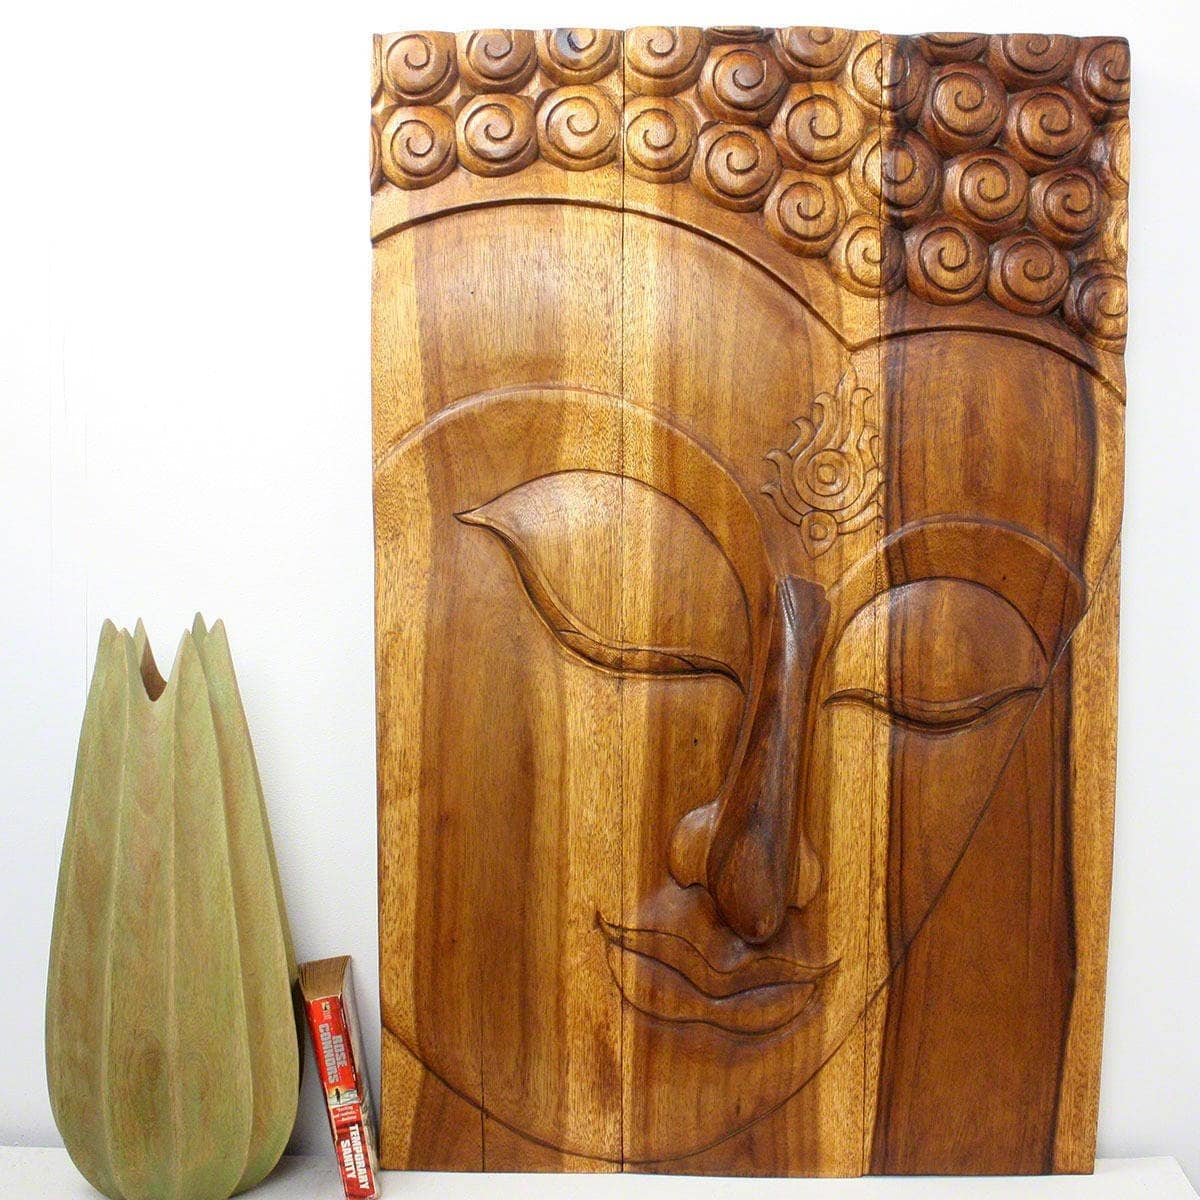 Haussmann Handmade Monkey Pod Wood Walnut Oil Ushnisha Buddha Panel (Thailand)